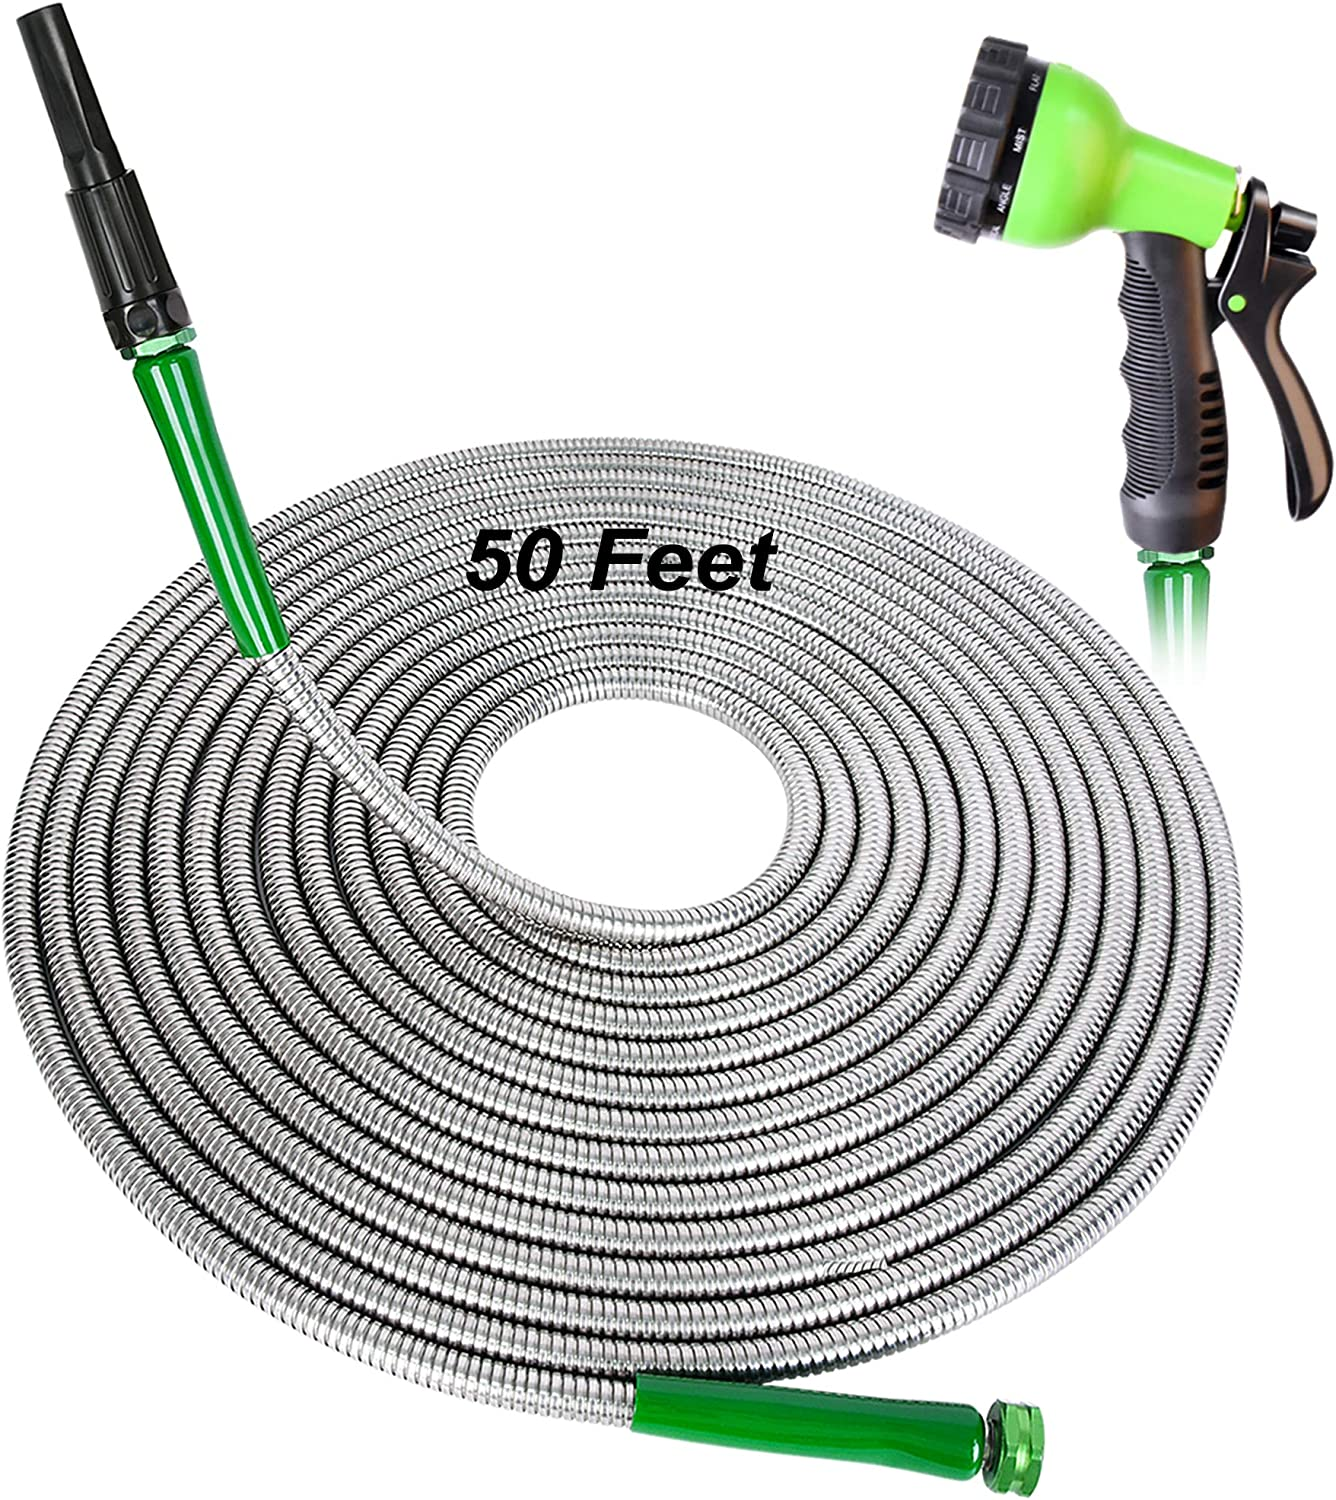 FUDESY 50 Feet 304 Stainless Steel Metal Garden Hose - 10-Ways Spray Nozzle | One More Adjustable Nozzle | Leakproof Gasket,Anti-Corrosion Kinkproof Water Hose for Garden,House,Pet